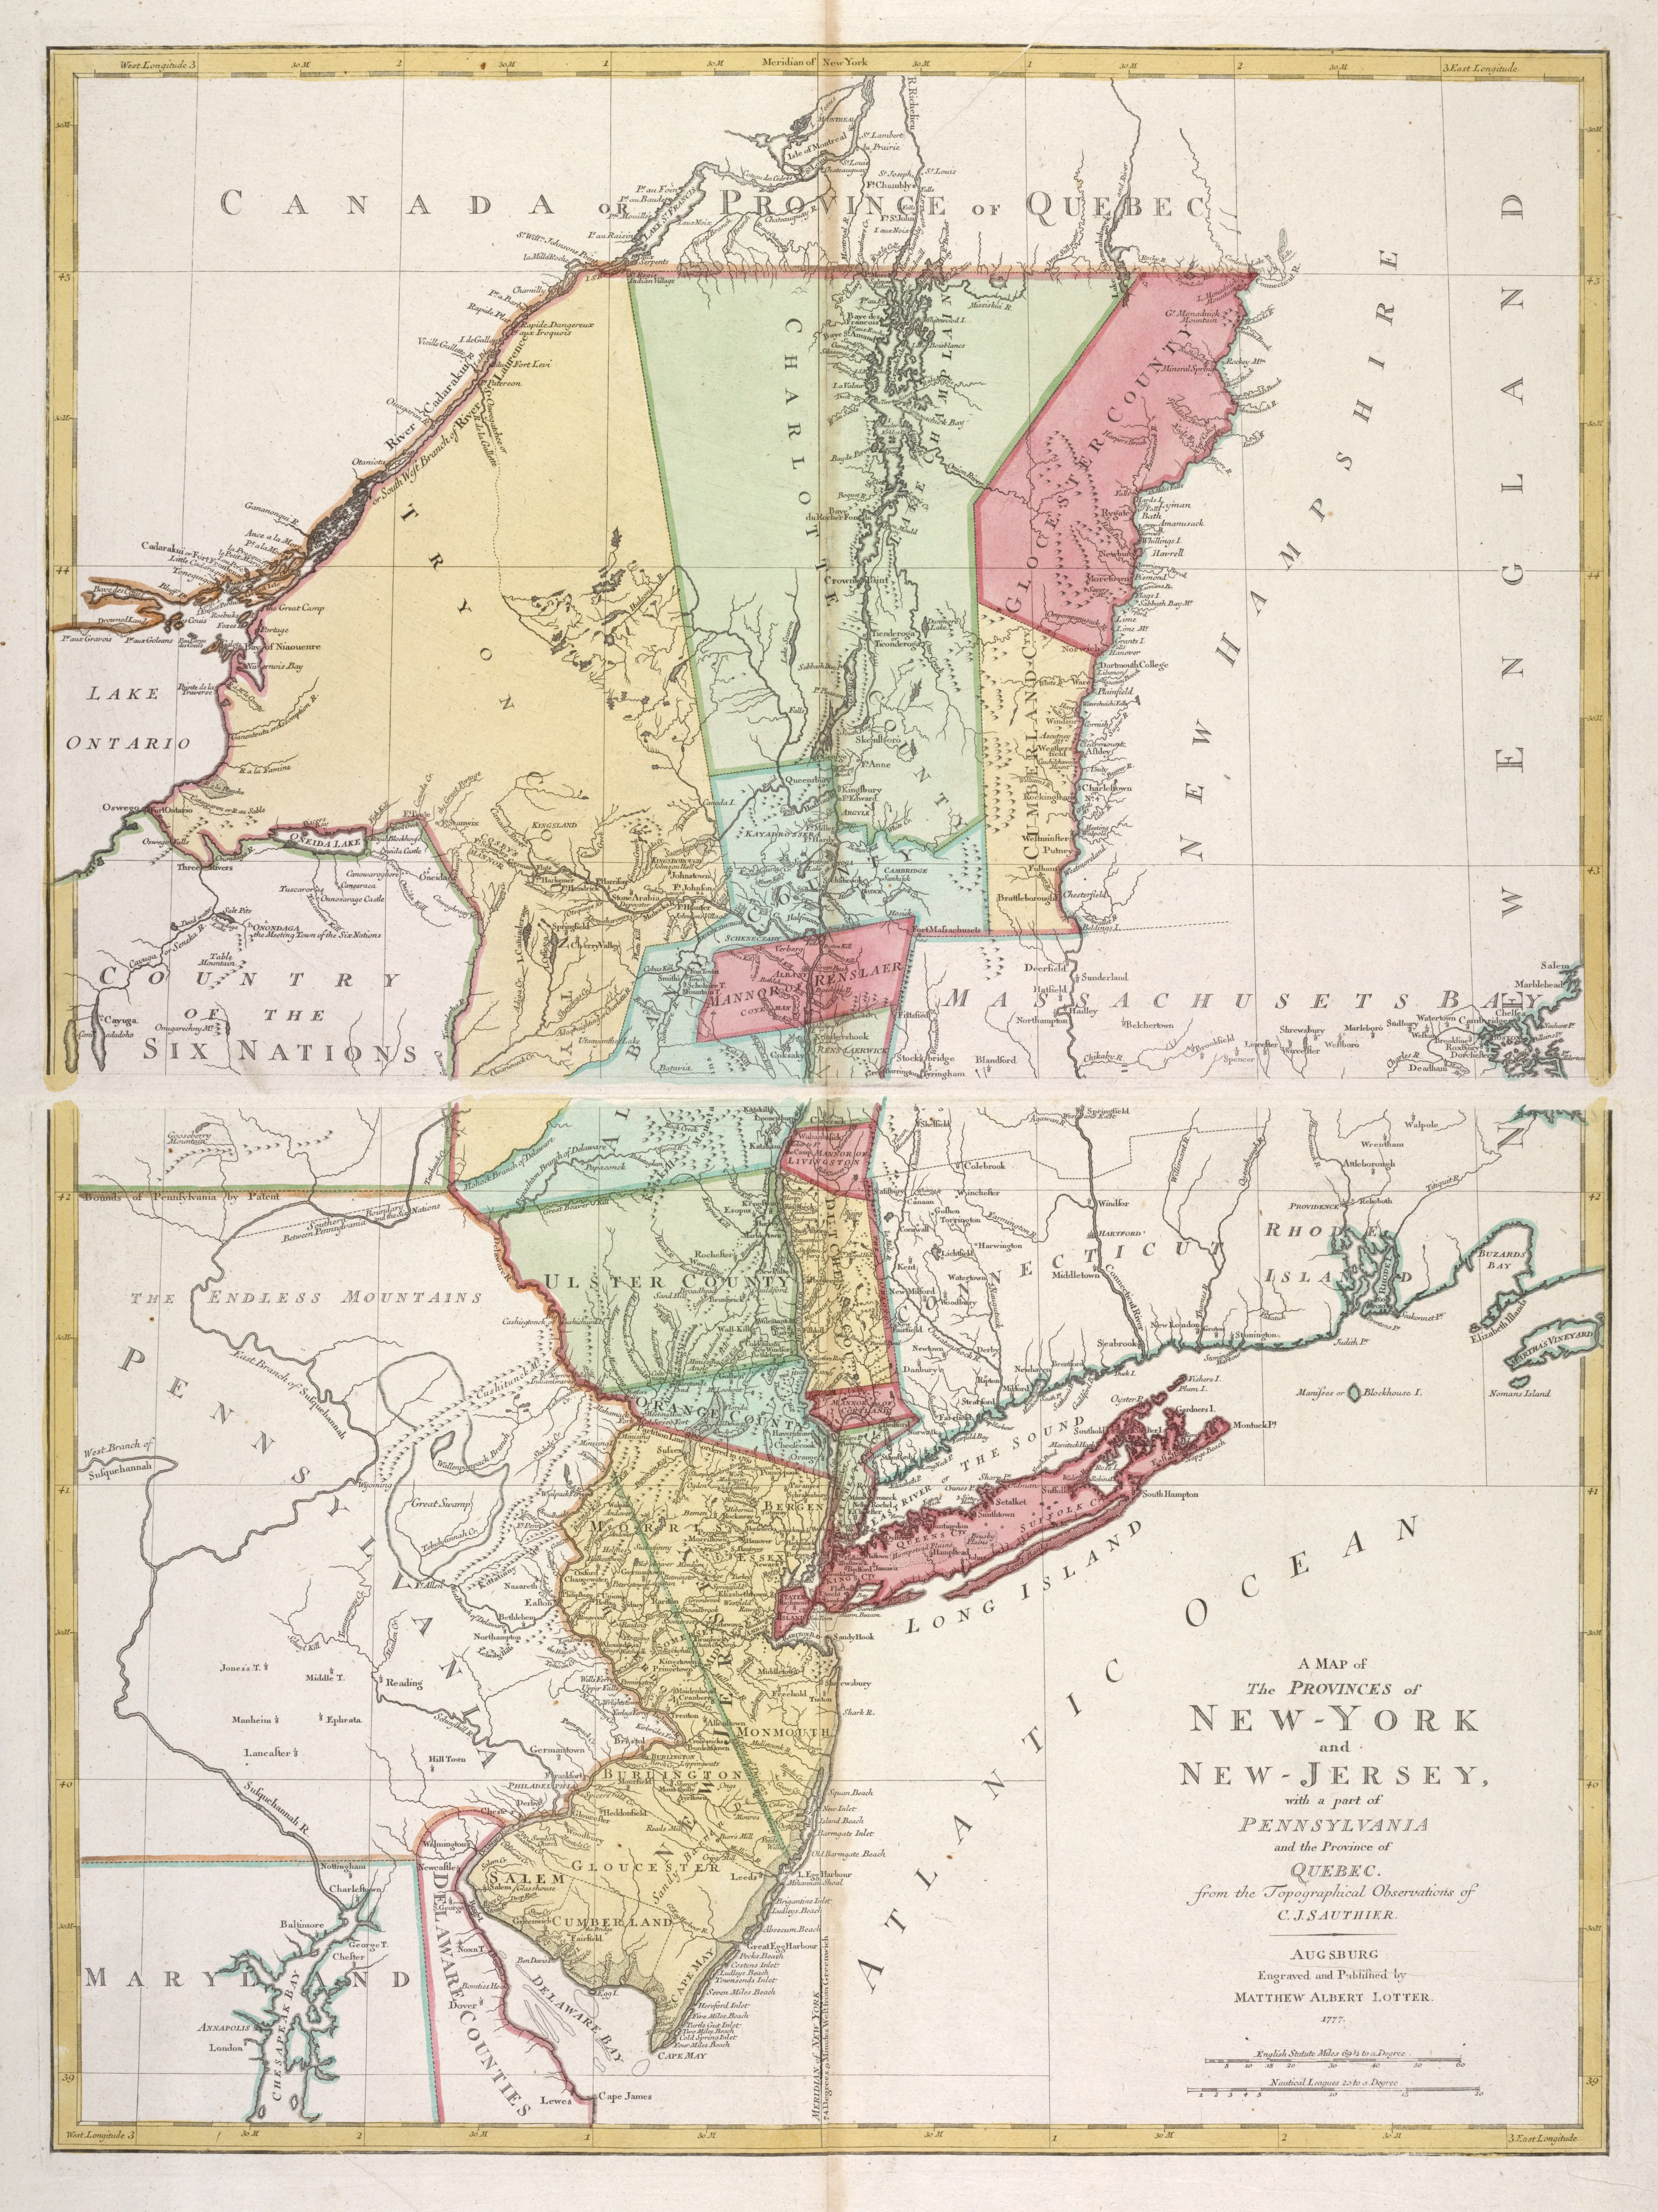 File:A map of the provinces of New-York and New Jersey ...